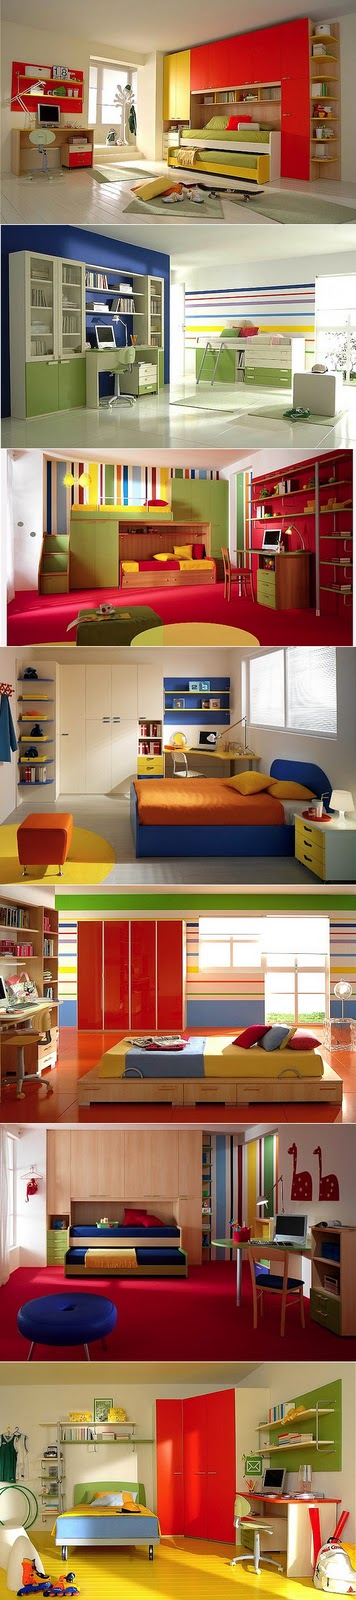 mobile home bedroom decorating ideas-colorful bedrooms